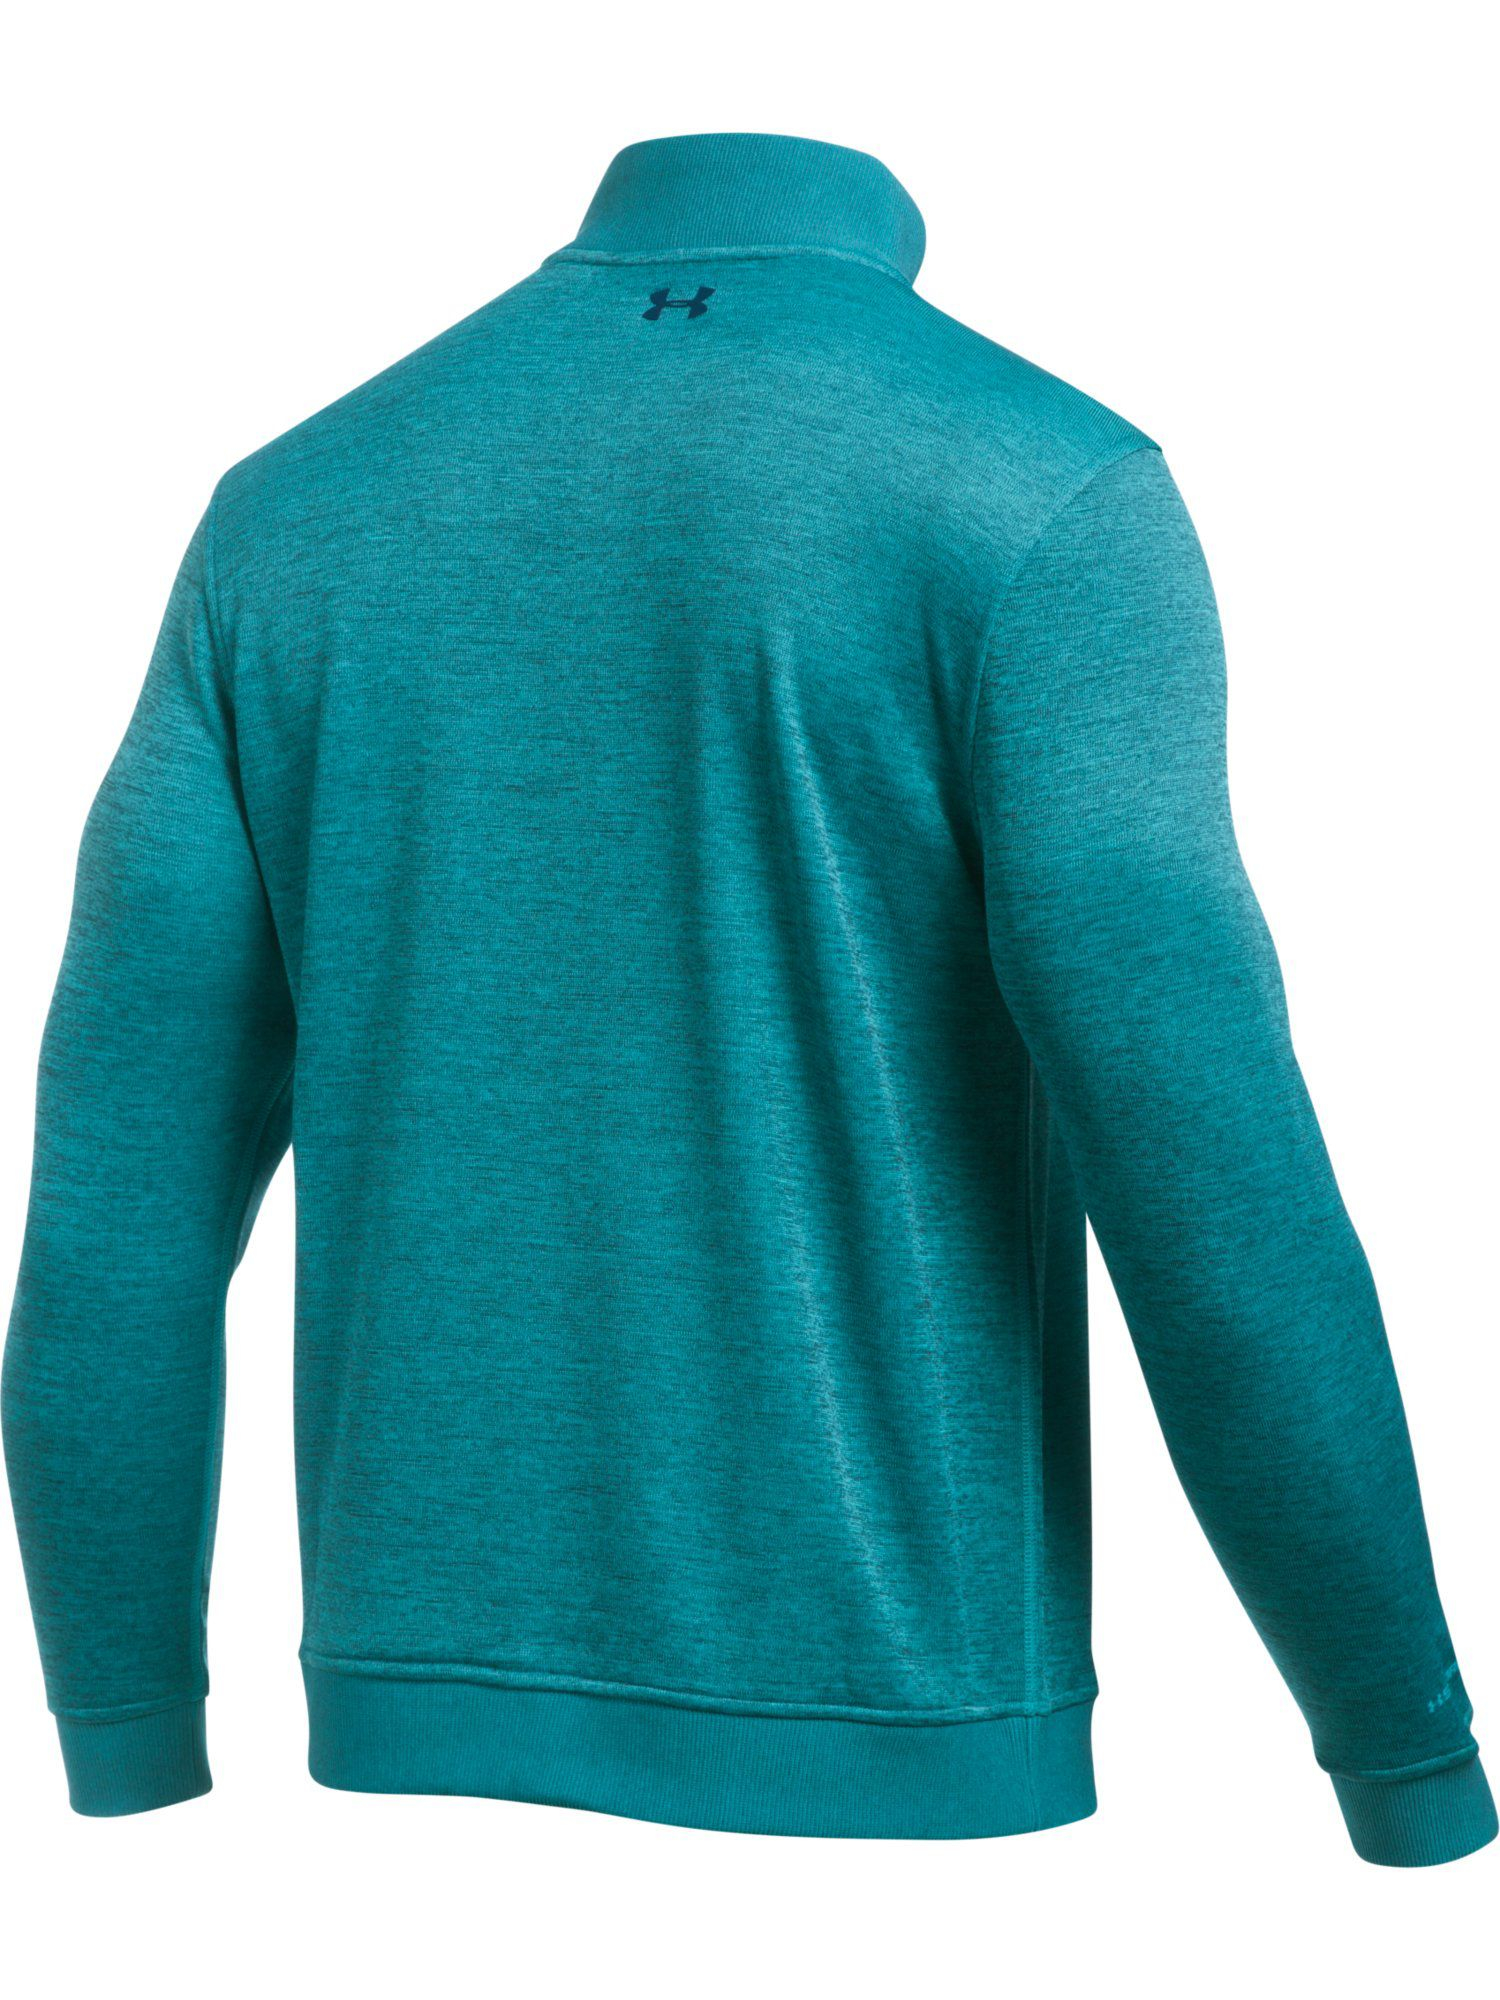 Lyst under armour storm sweater fleece in blue for men for Flannel shirt under sweater